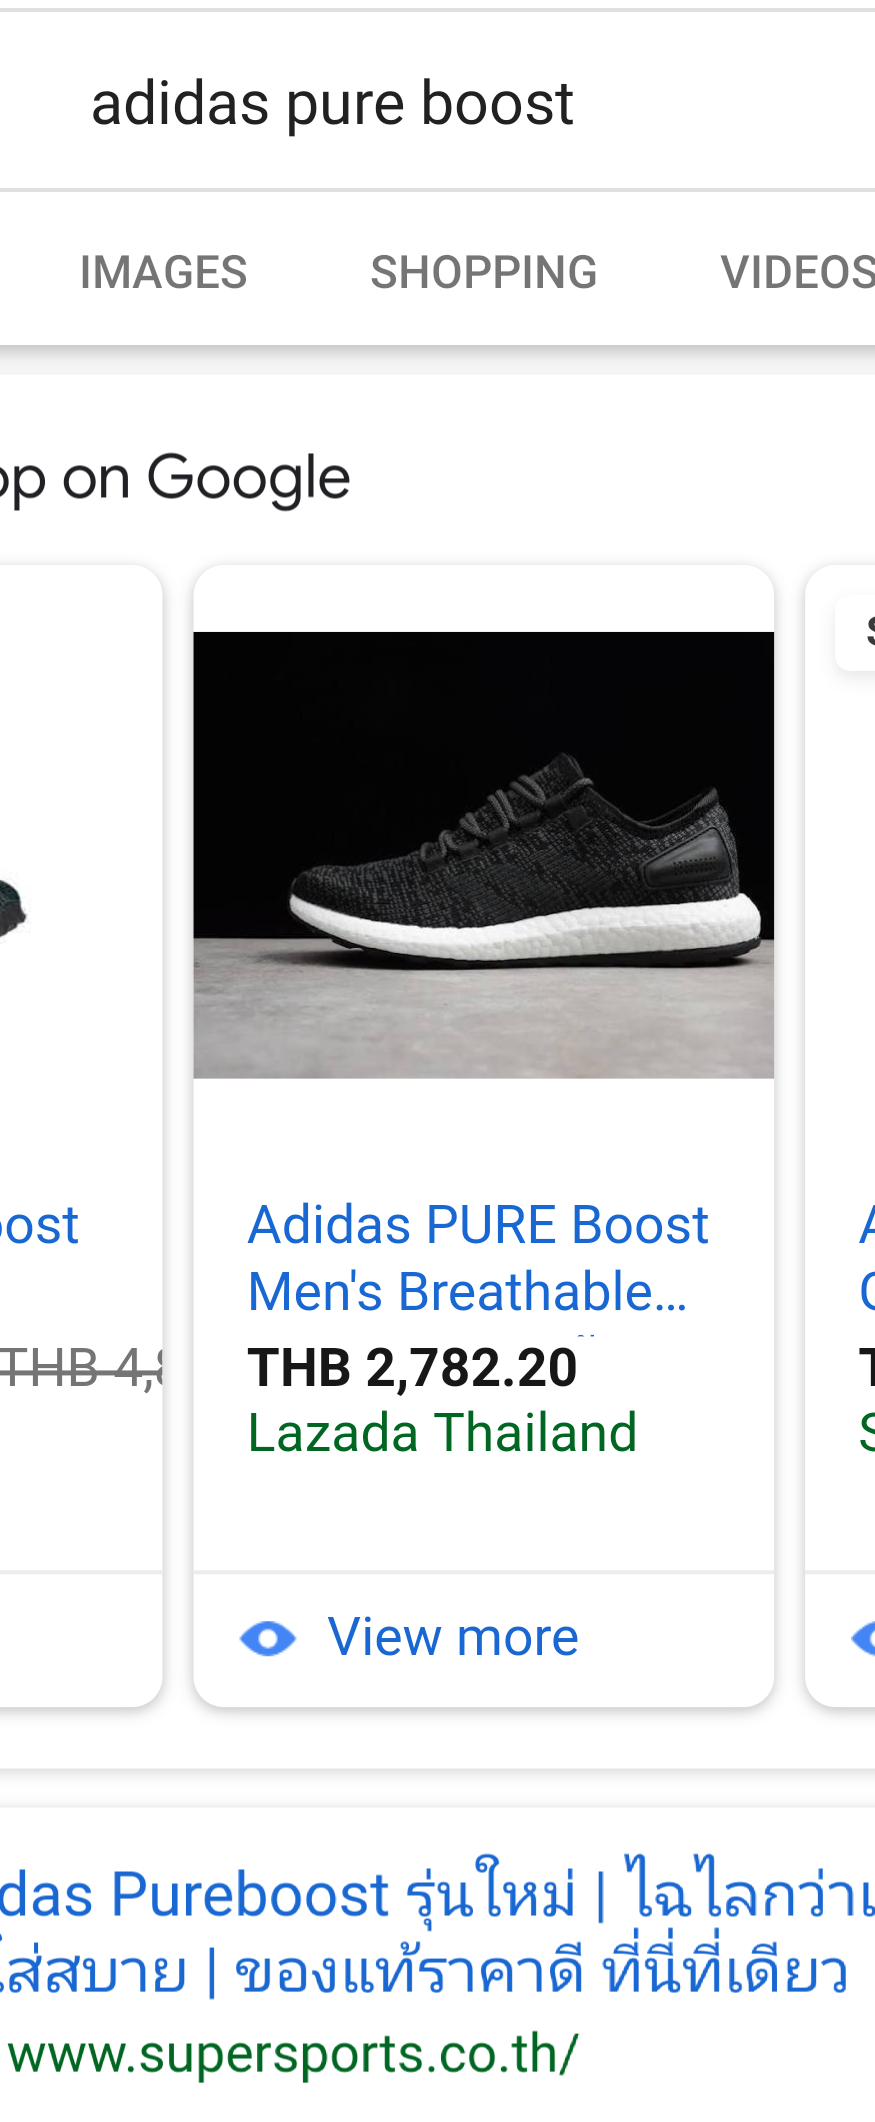 promo code 6c24e f418a Supersports Special Offer! ADIDAS: Pureboost just 3,100 baht ...